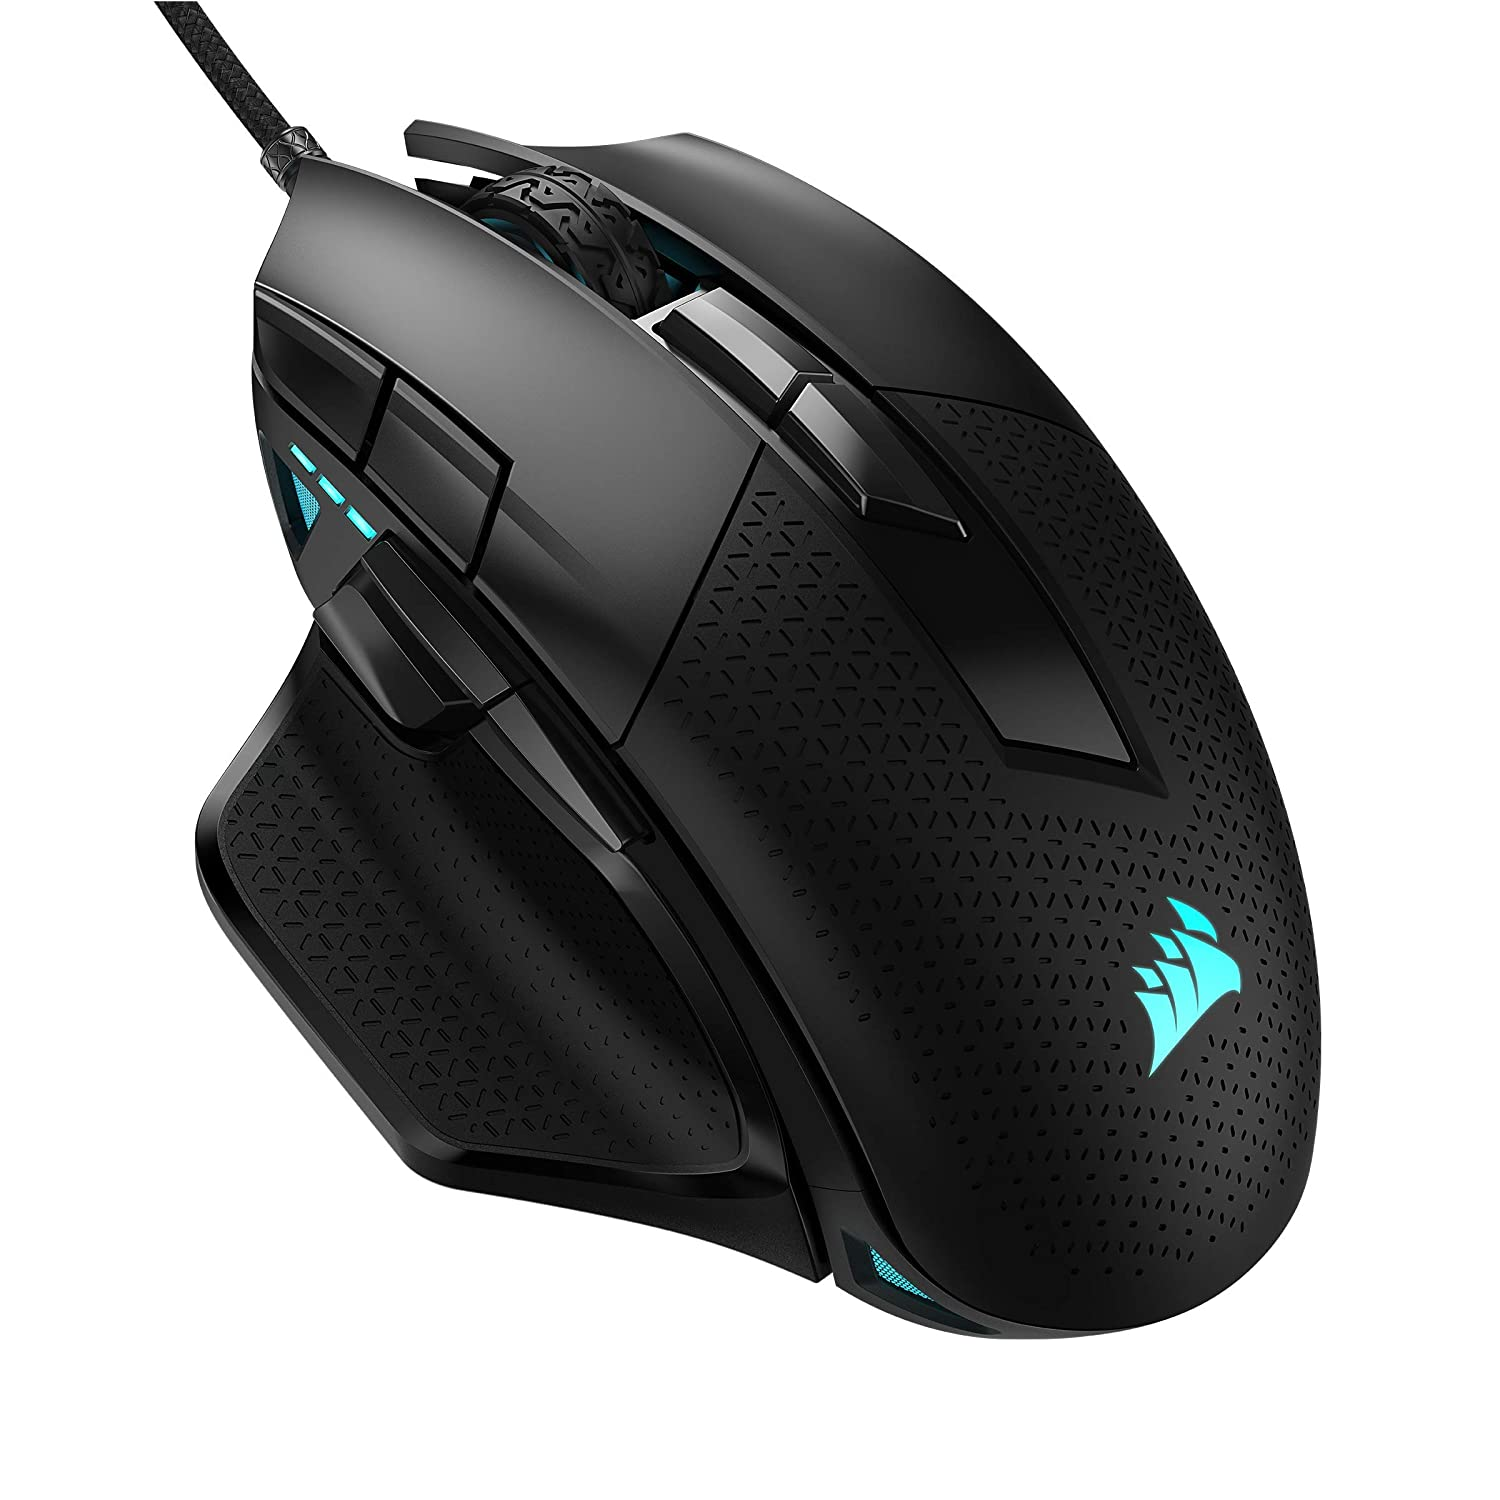 Corsair Nightsword RGB Performance Tunable FPS/MOBA Optical 18000 DPI Gaming Mouse (Black) - $69.99 + FS